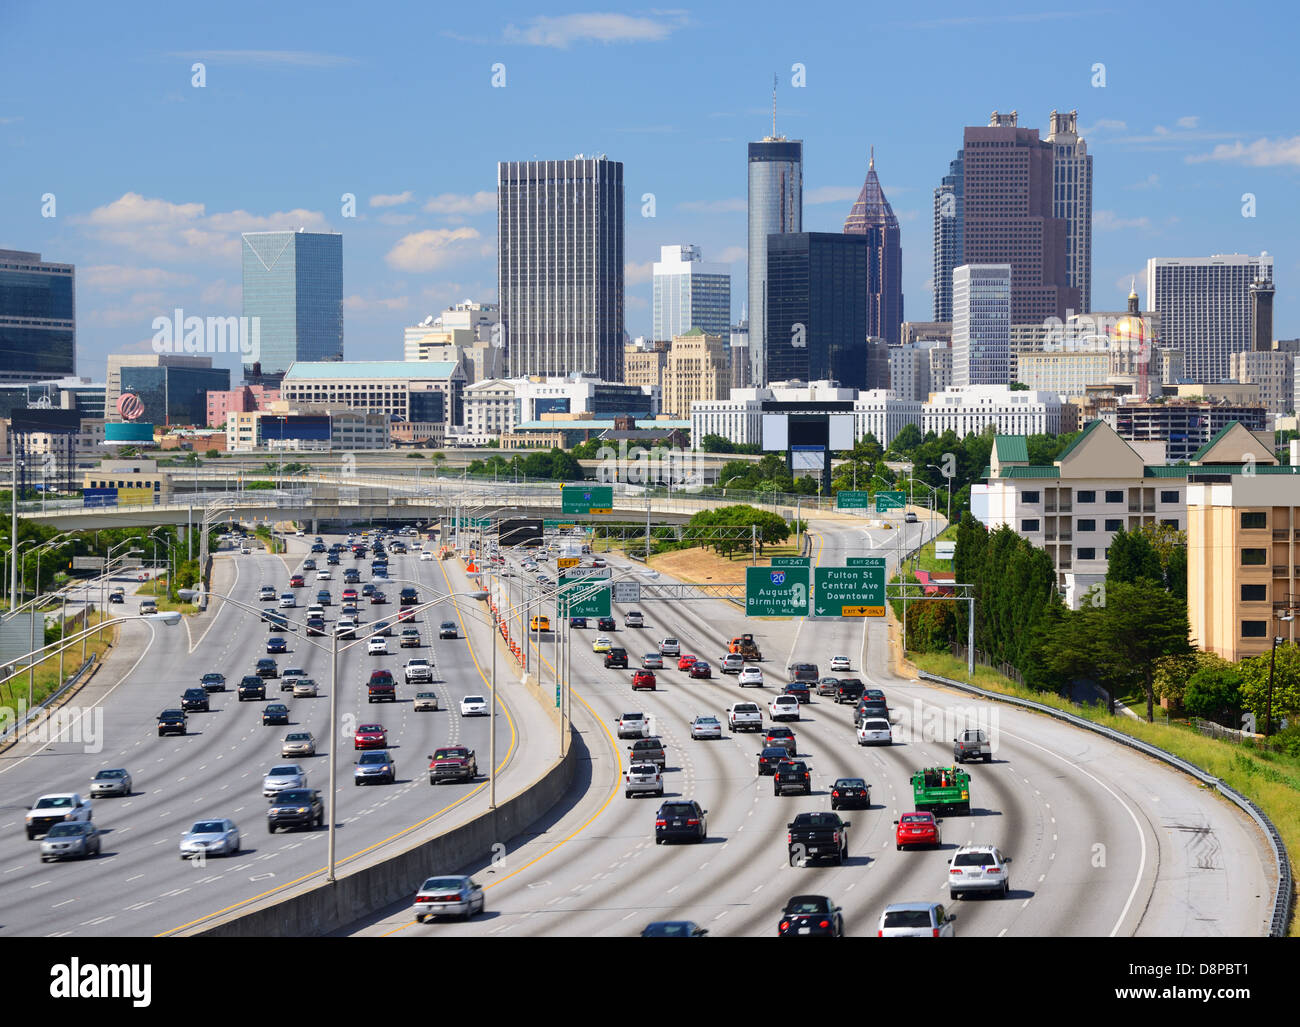 Skyline of downtown Atlanta, Georgia. - Stock Image